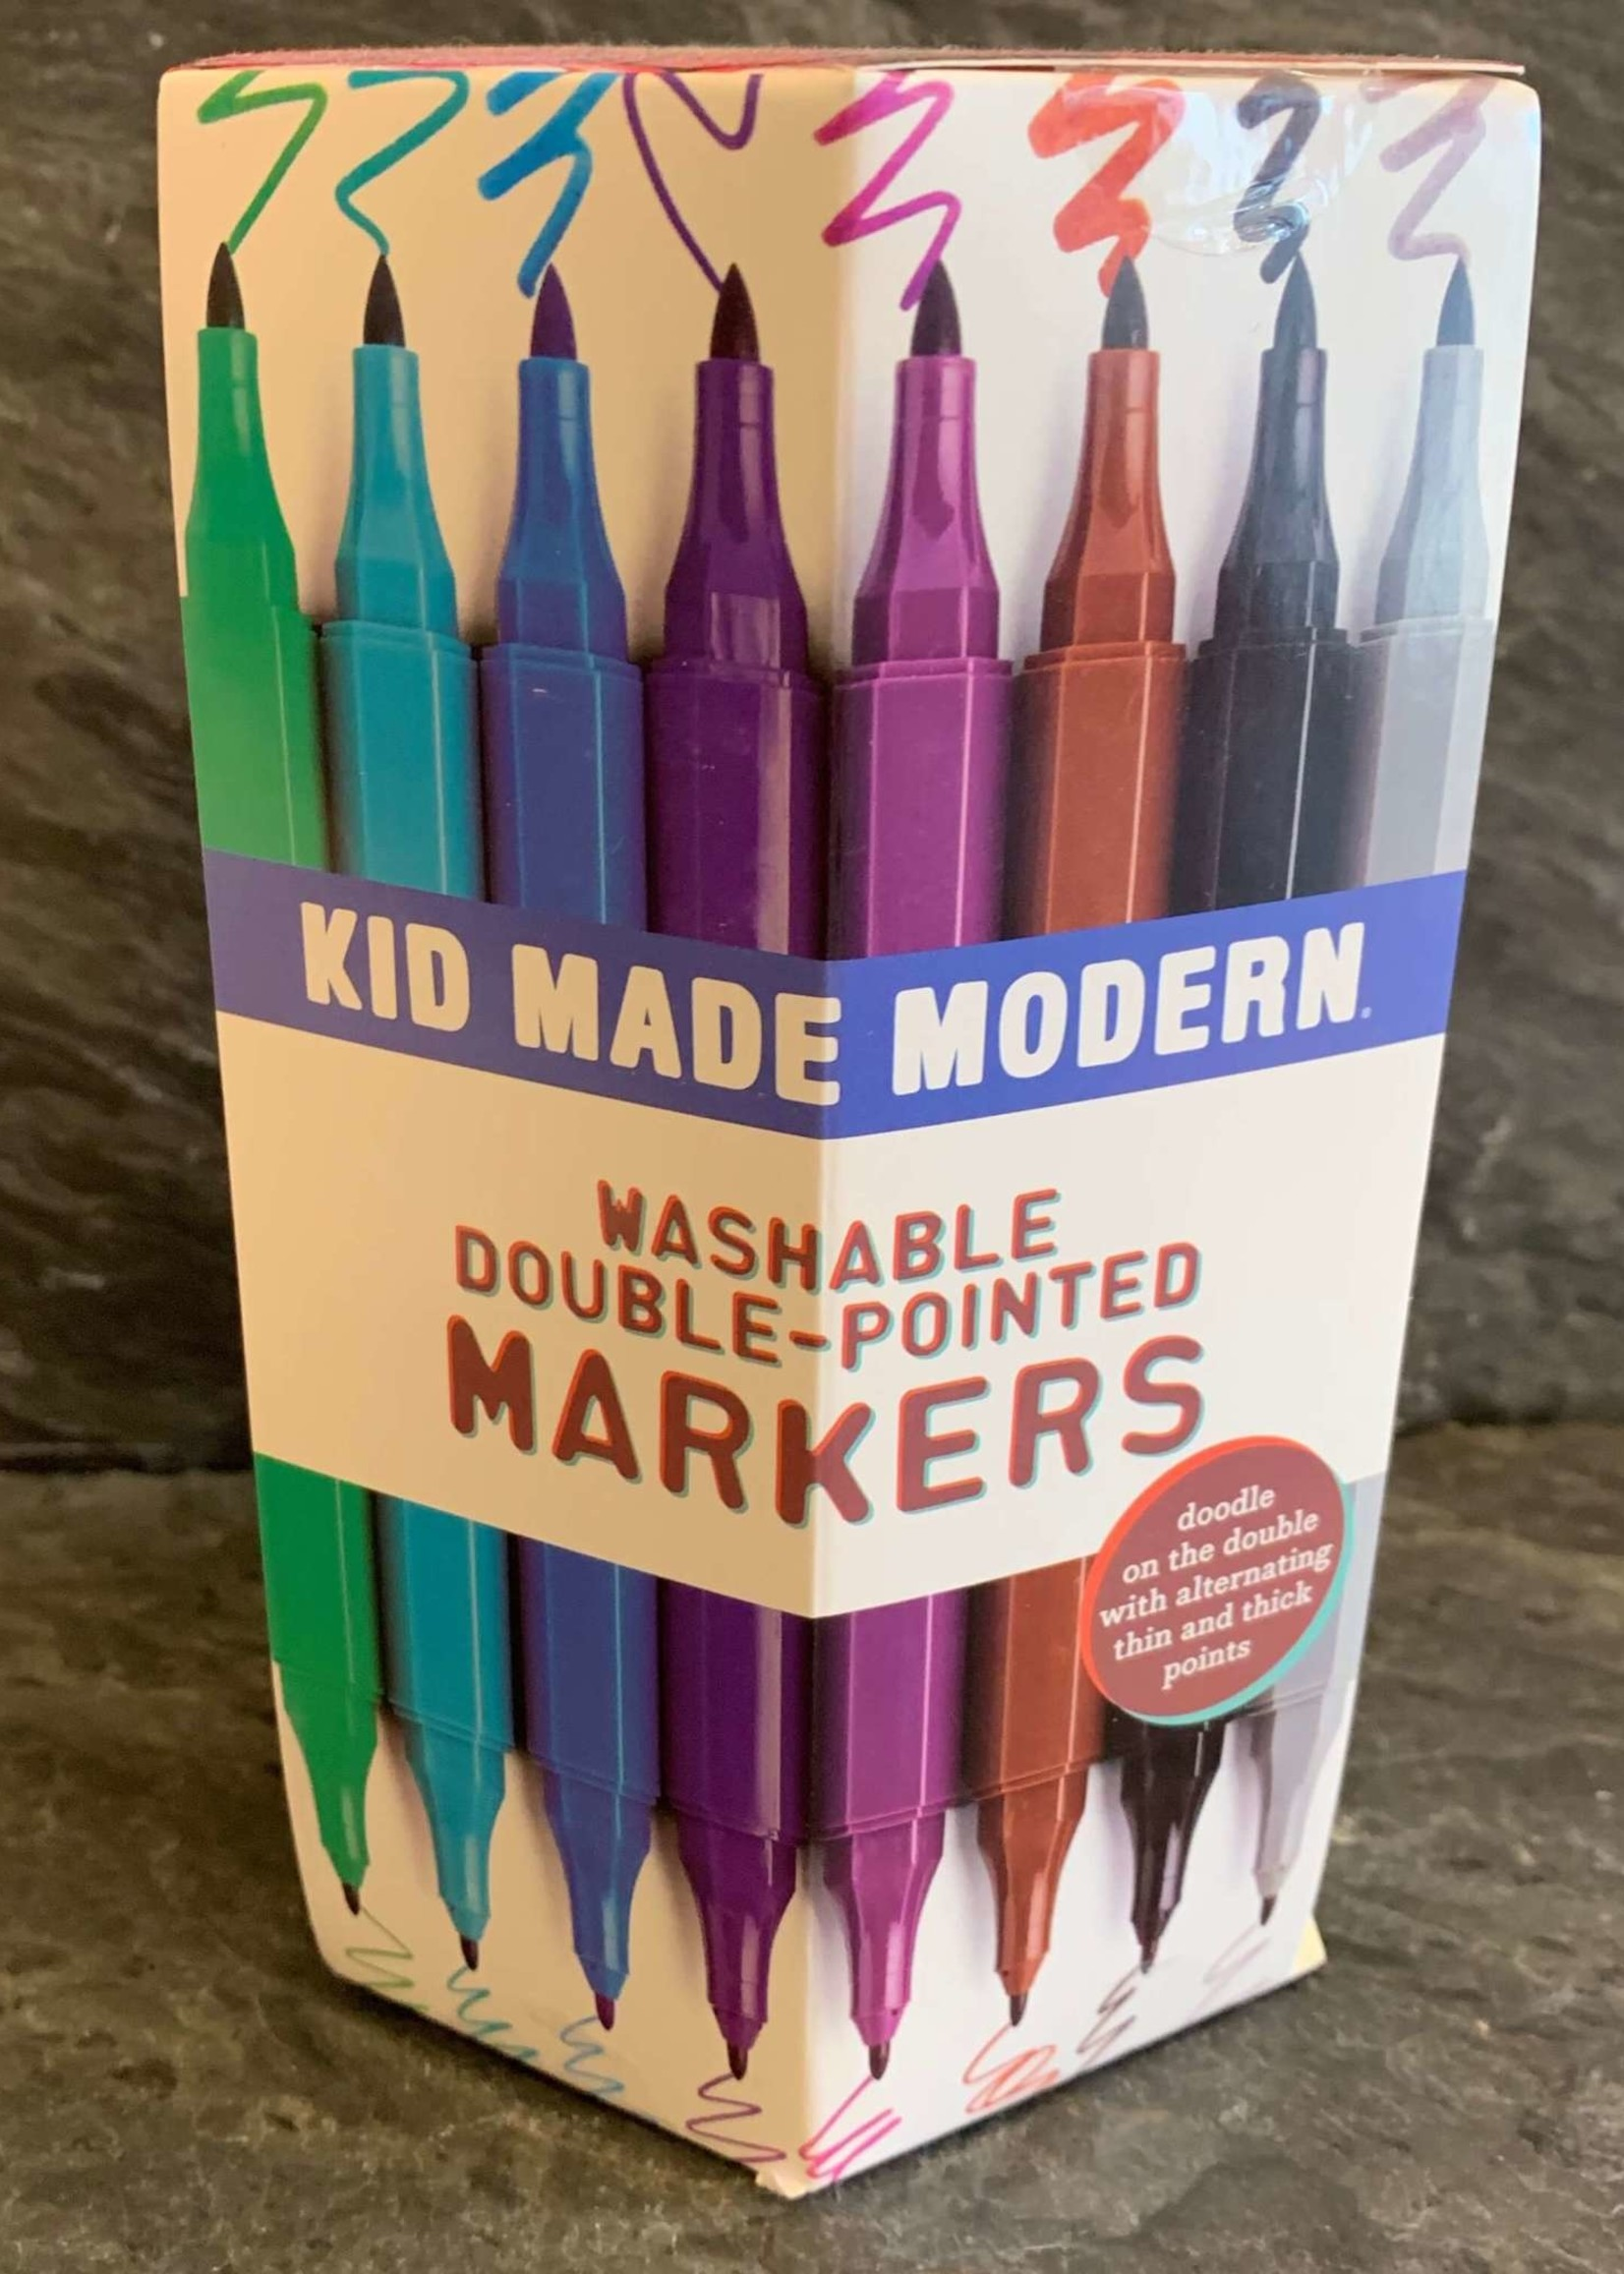 Kids Made Modern Kid Made Modern Double Pointed Washable Markers 30 Count